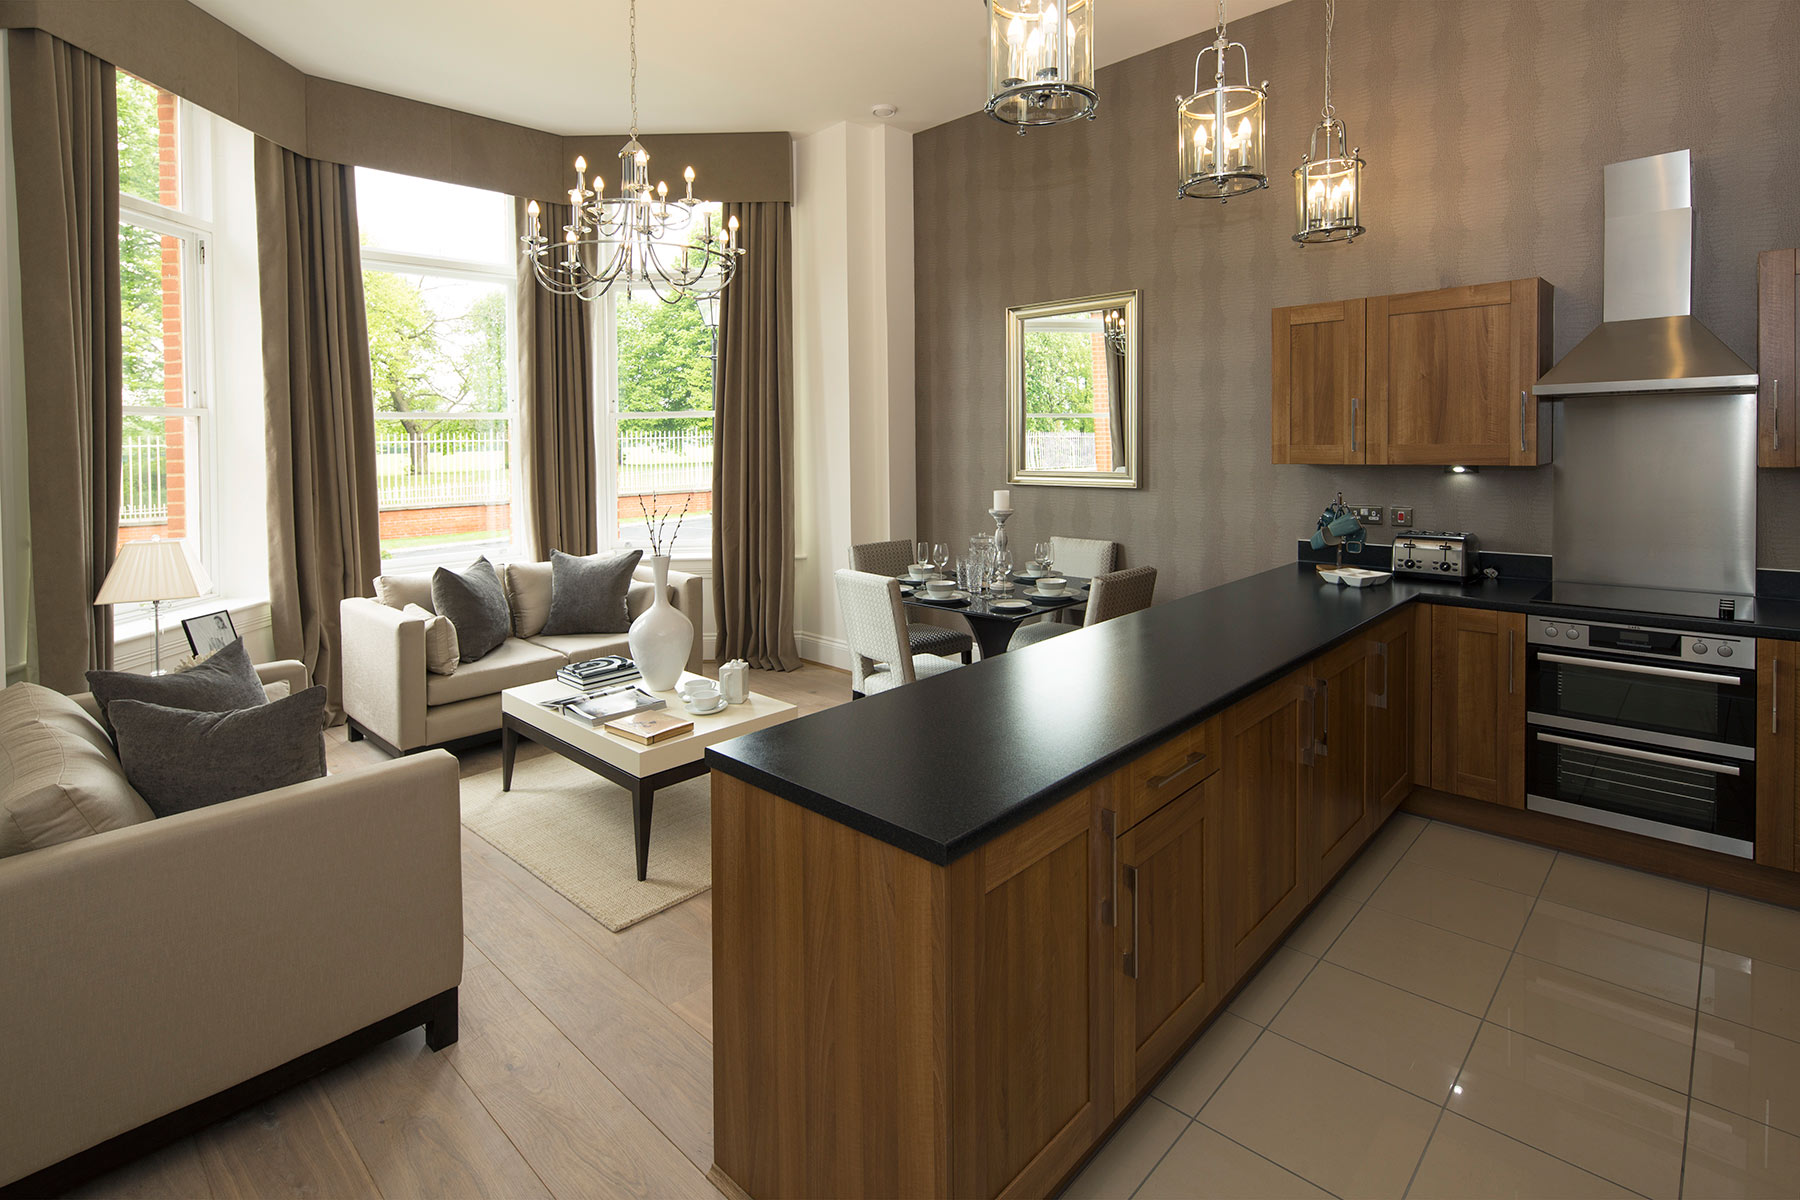 Typical kitchen/living room, Brigadier House Colchester